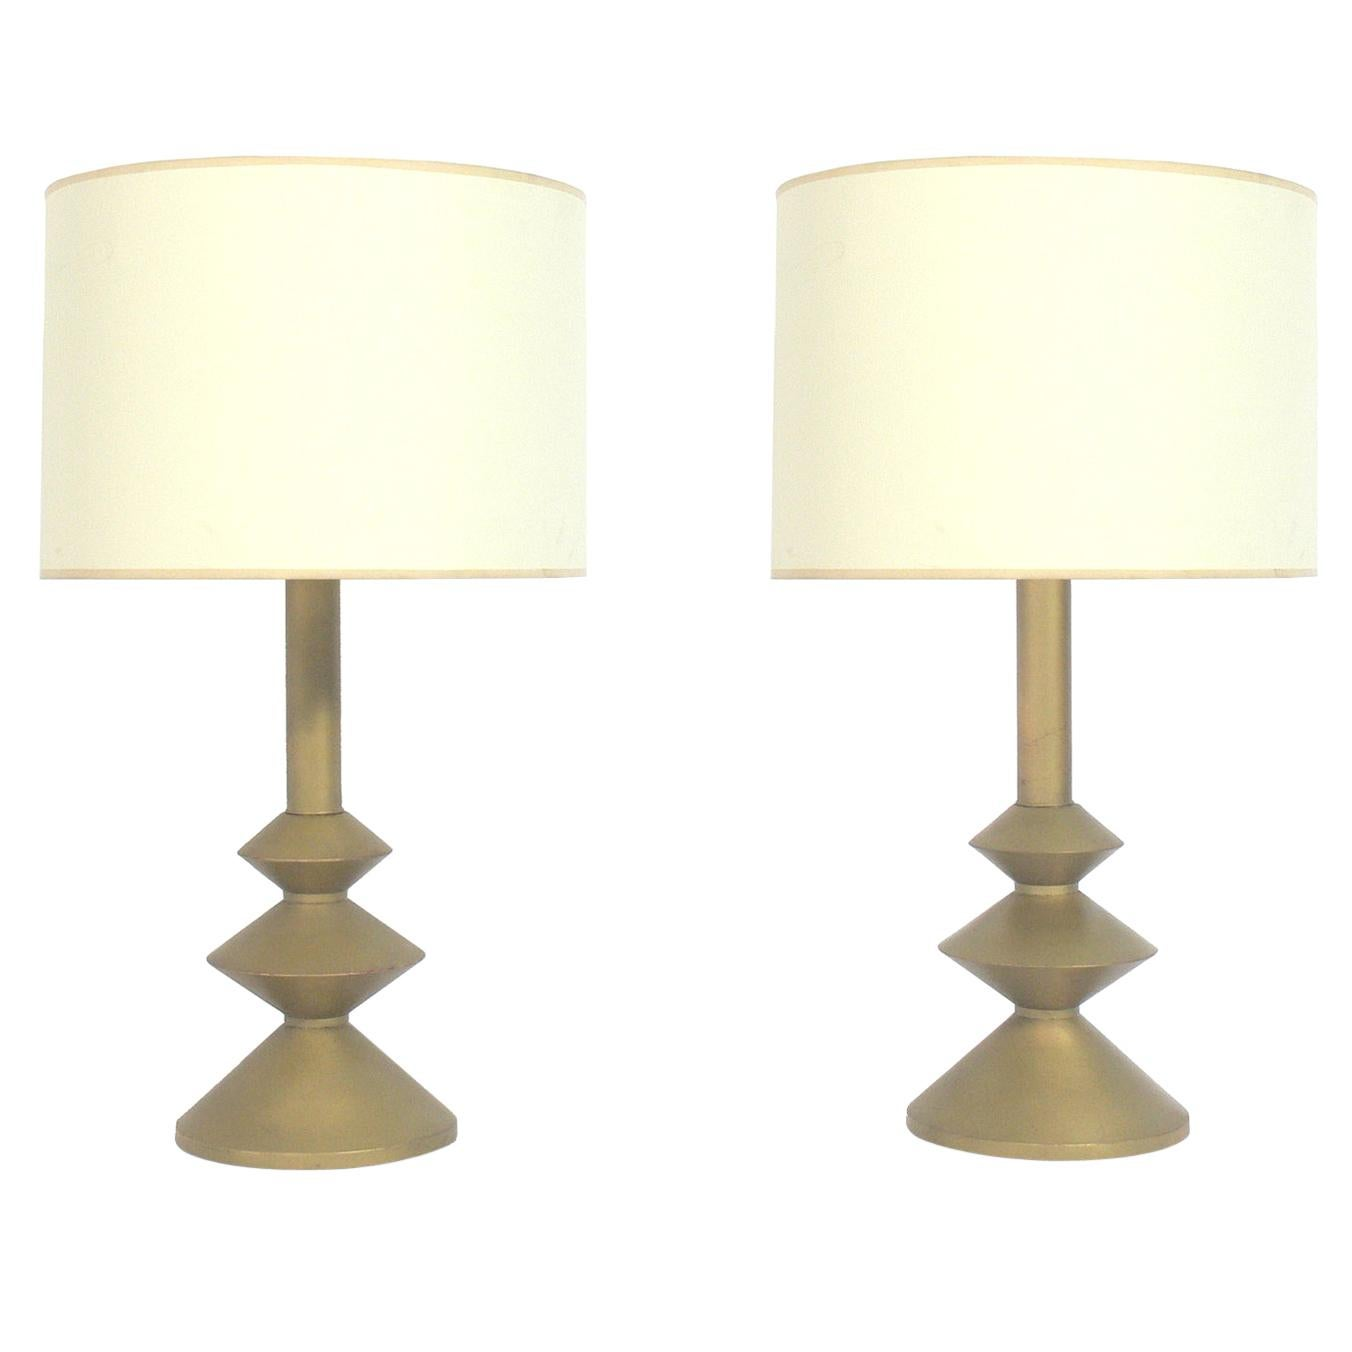 Pair of Sculptural Gold Leaf Lamps in the Manner of Giacometti